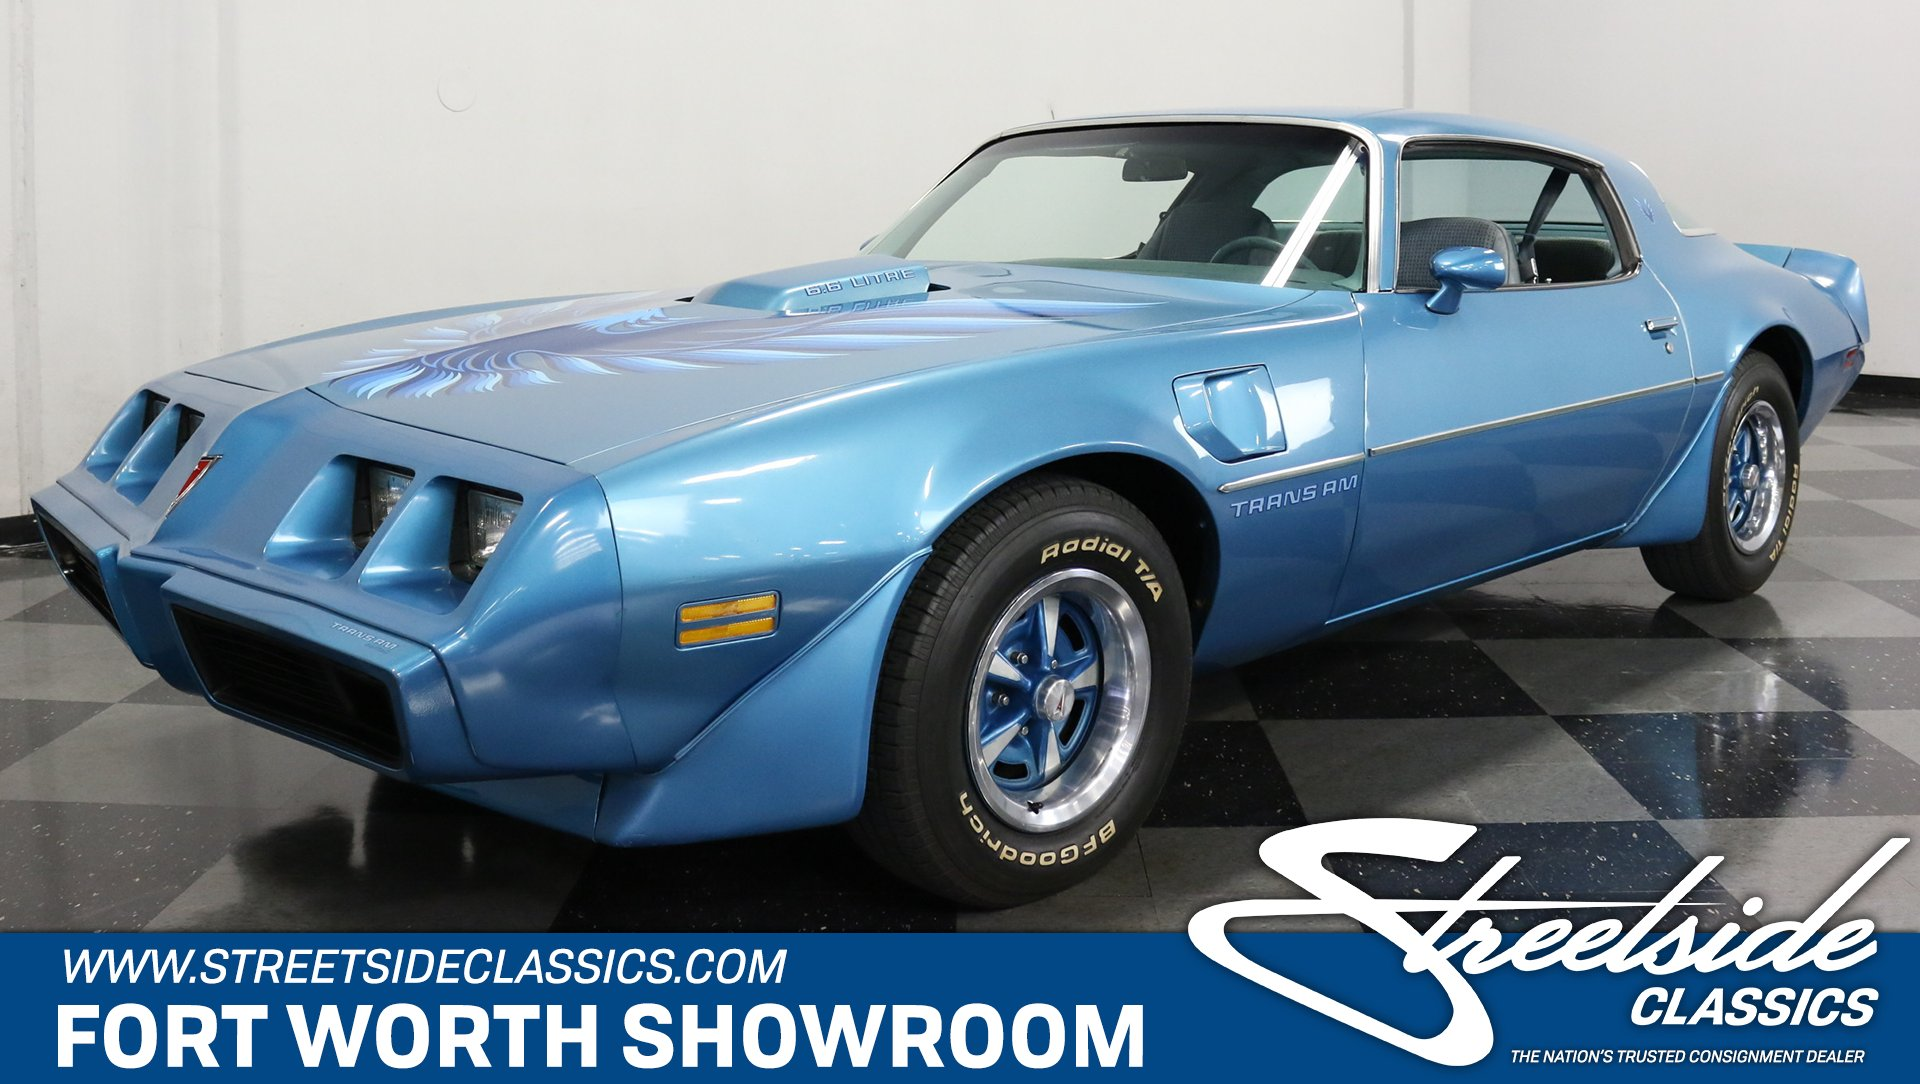 1979 Trans Am Picture 1979 Pontiac Firebird Streetside Classics The Nation S Trusted